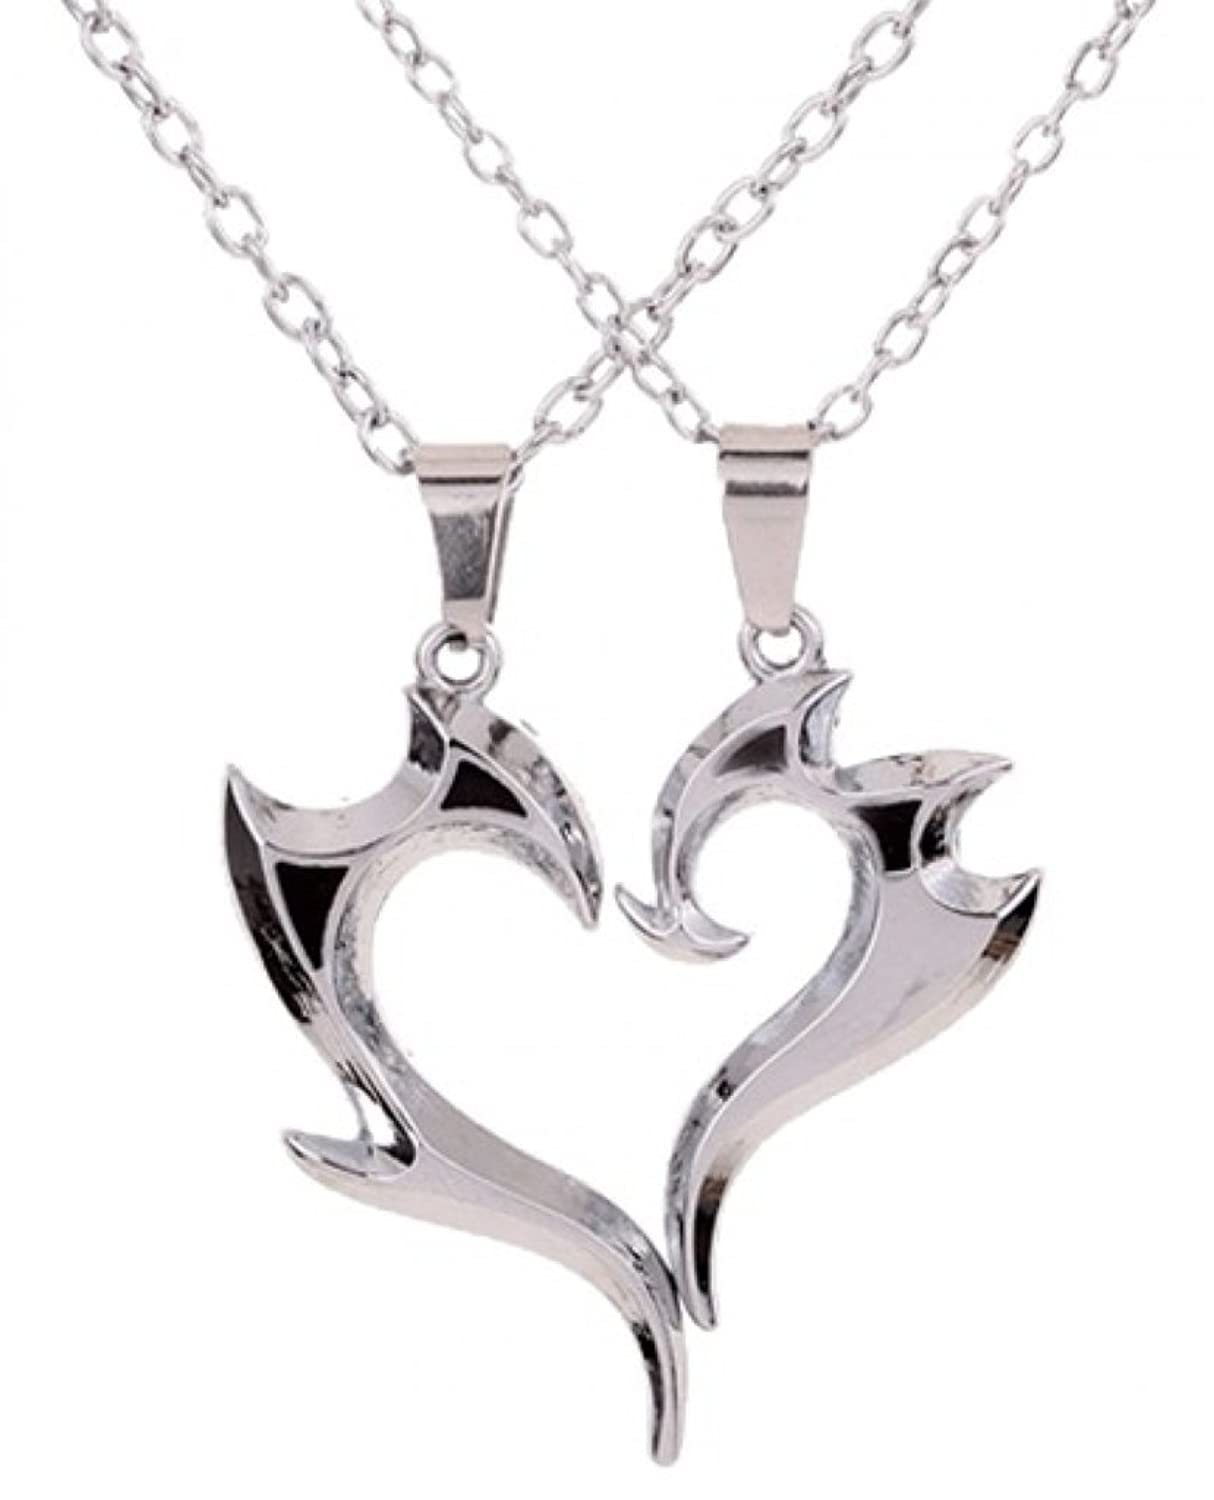 kuniu lovers necklace matching couple hearts produit stainless steel pendant index shape pair fashion rhinestone